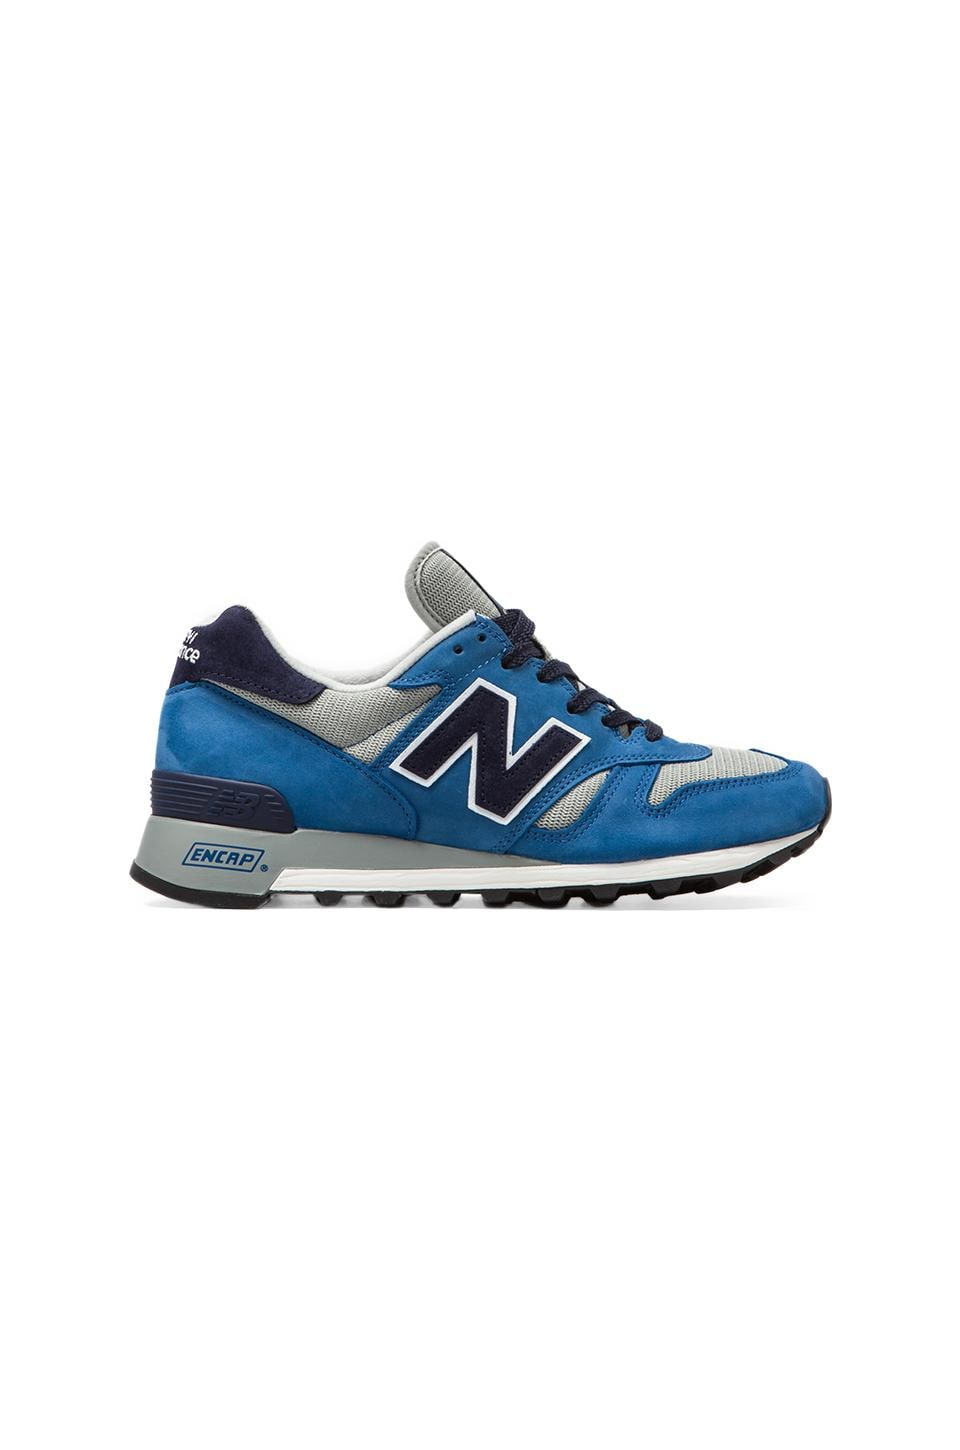 New Balance Made in the USA M1300 in Grey/Blue